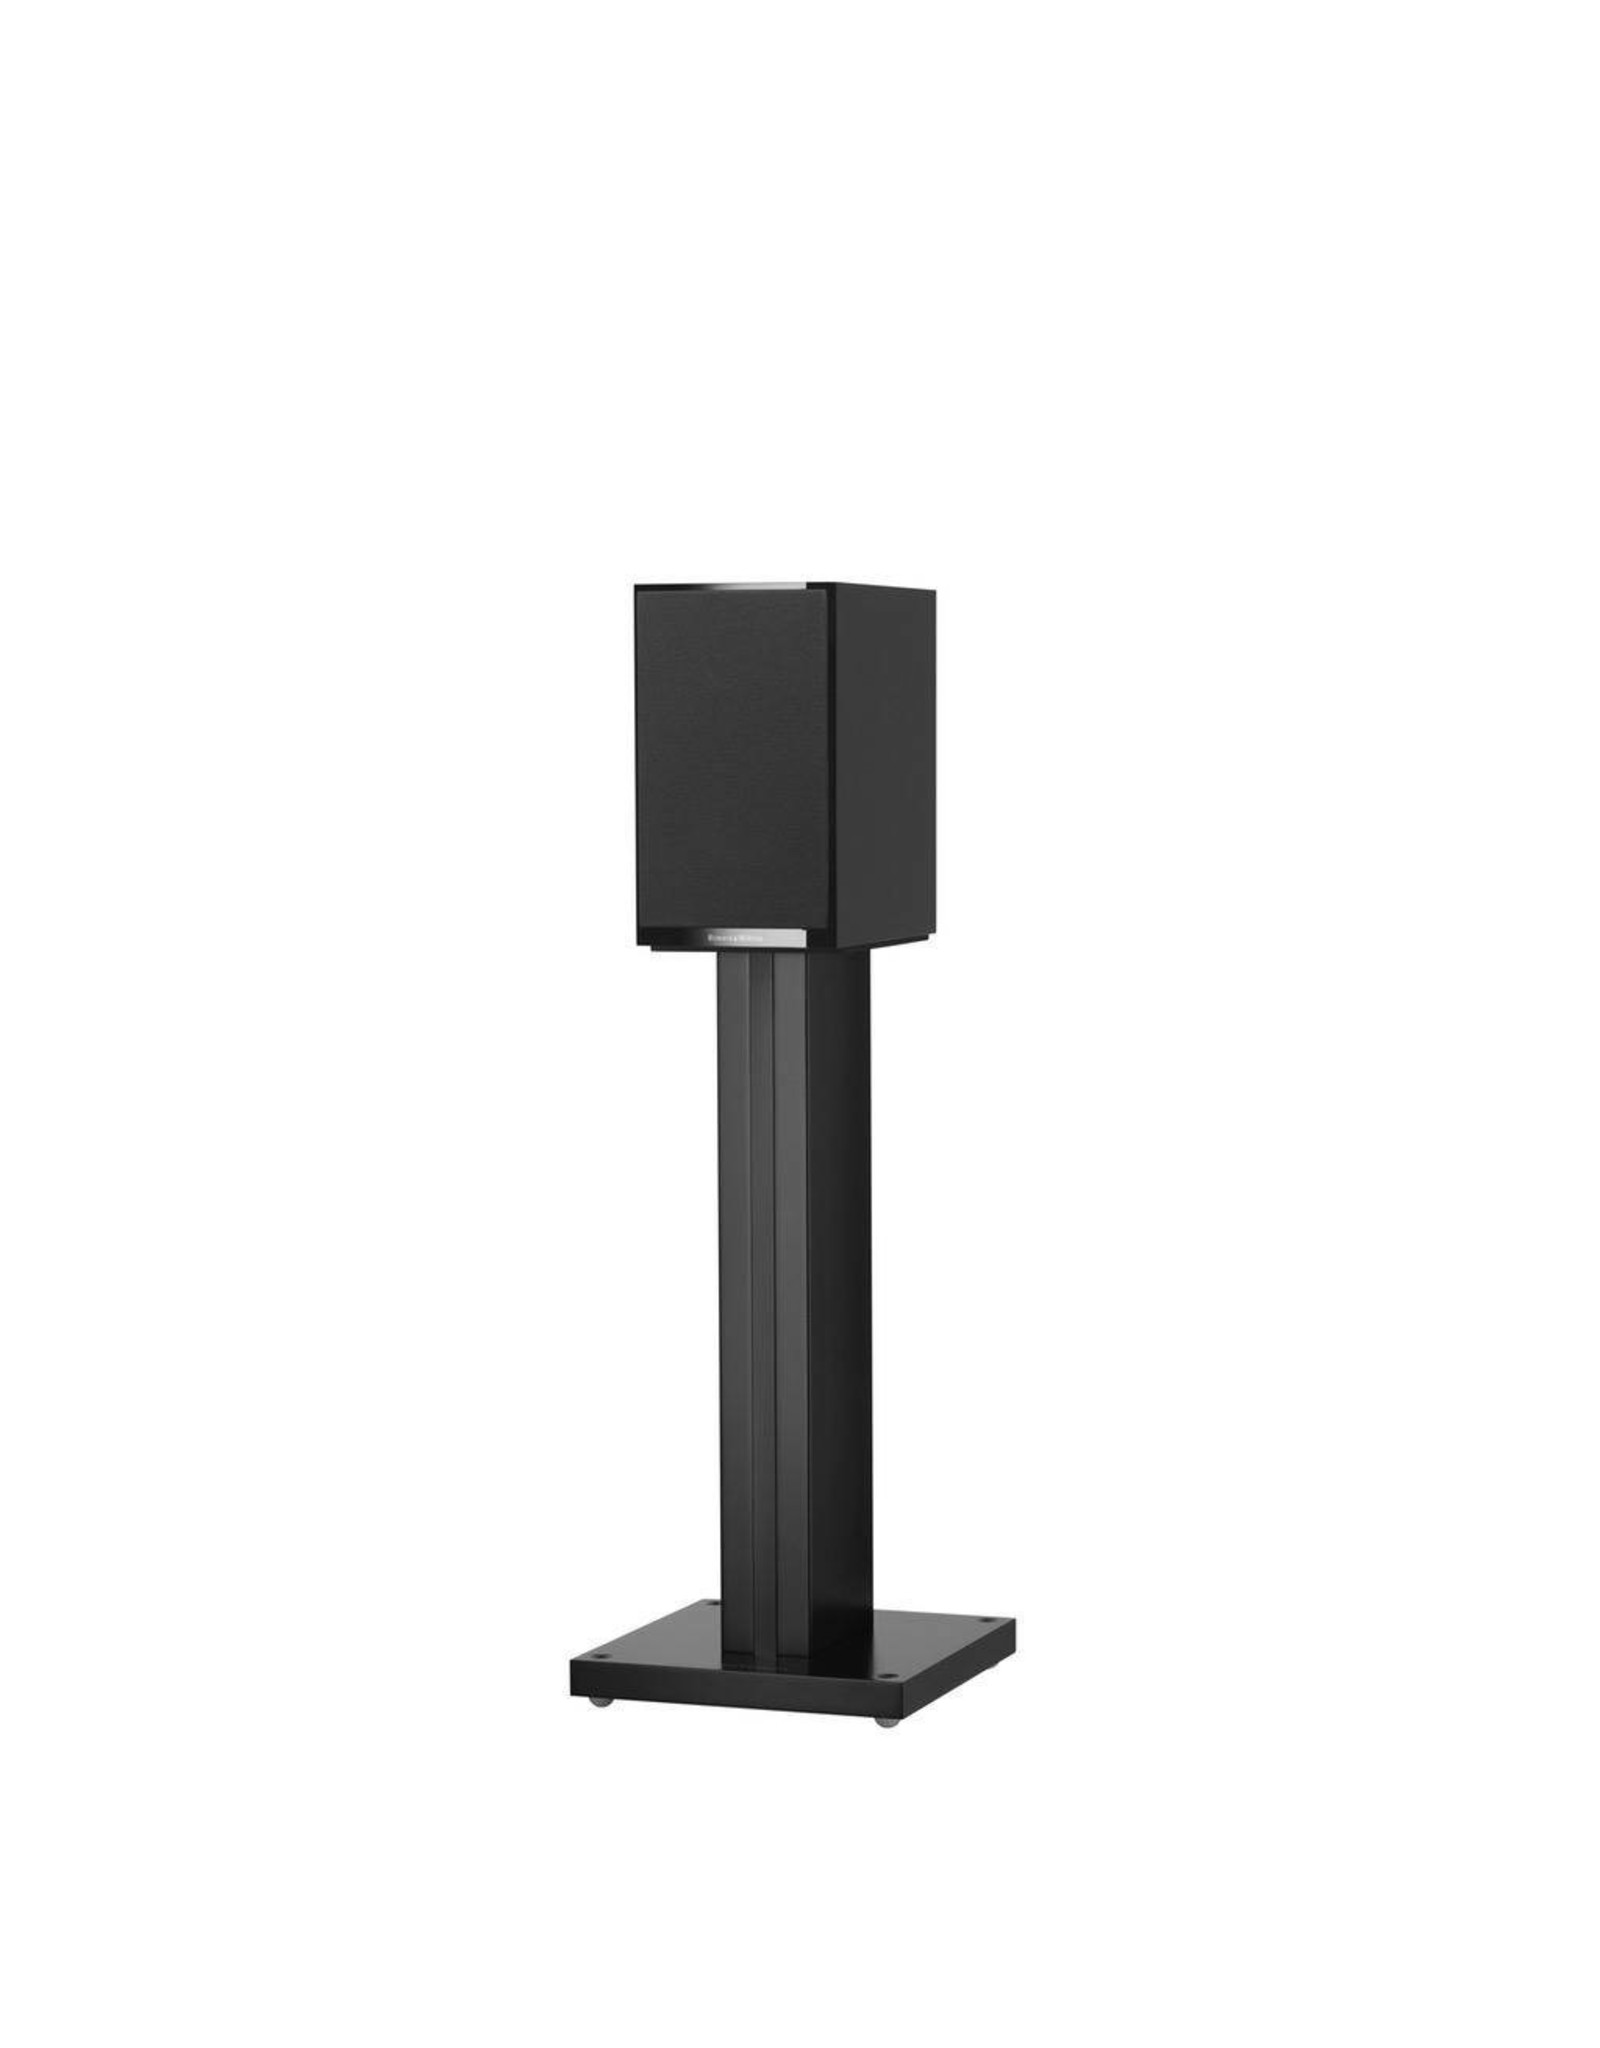 BOWERS & WILKINS B&W 707 S2 2-Way Shelf/Stand Mount Speakers (pair)